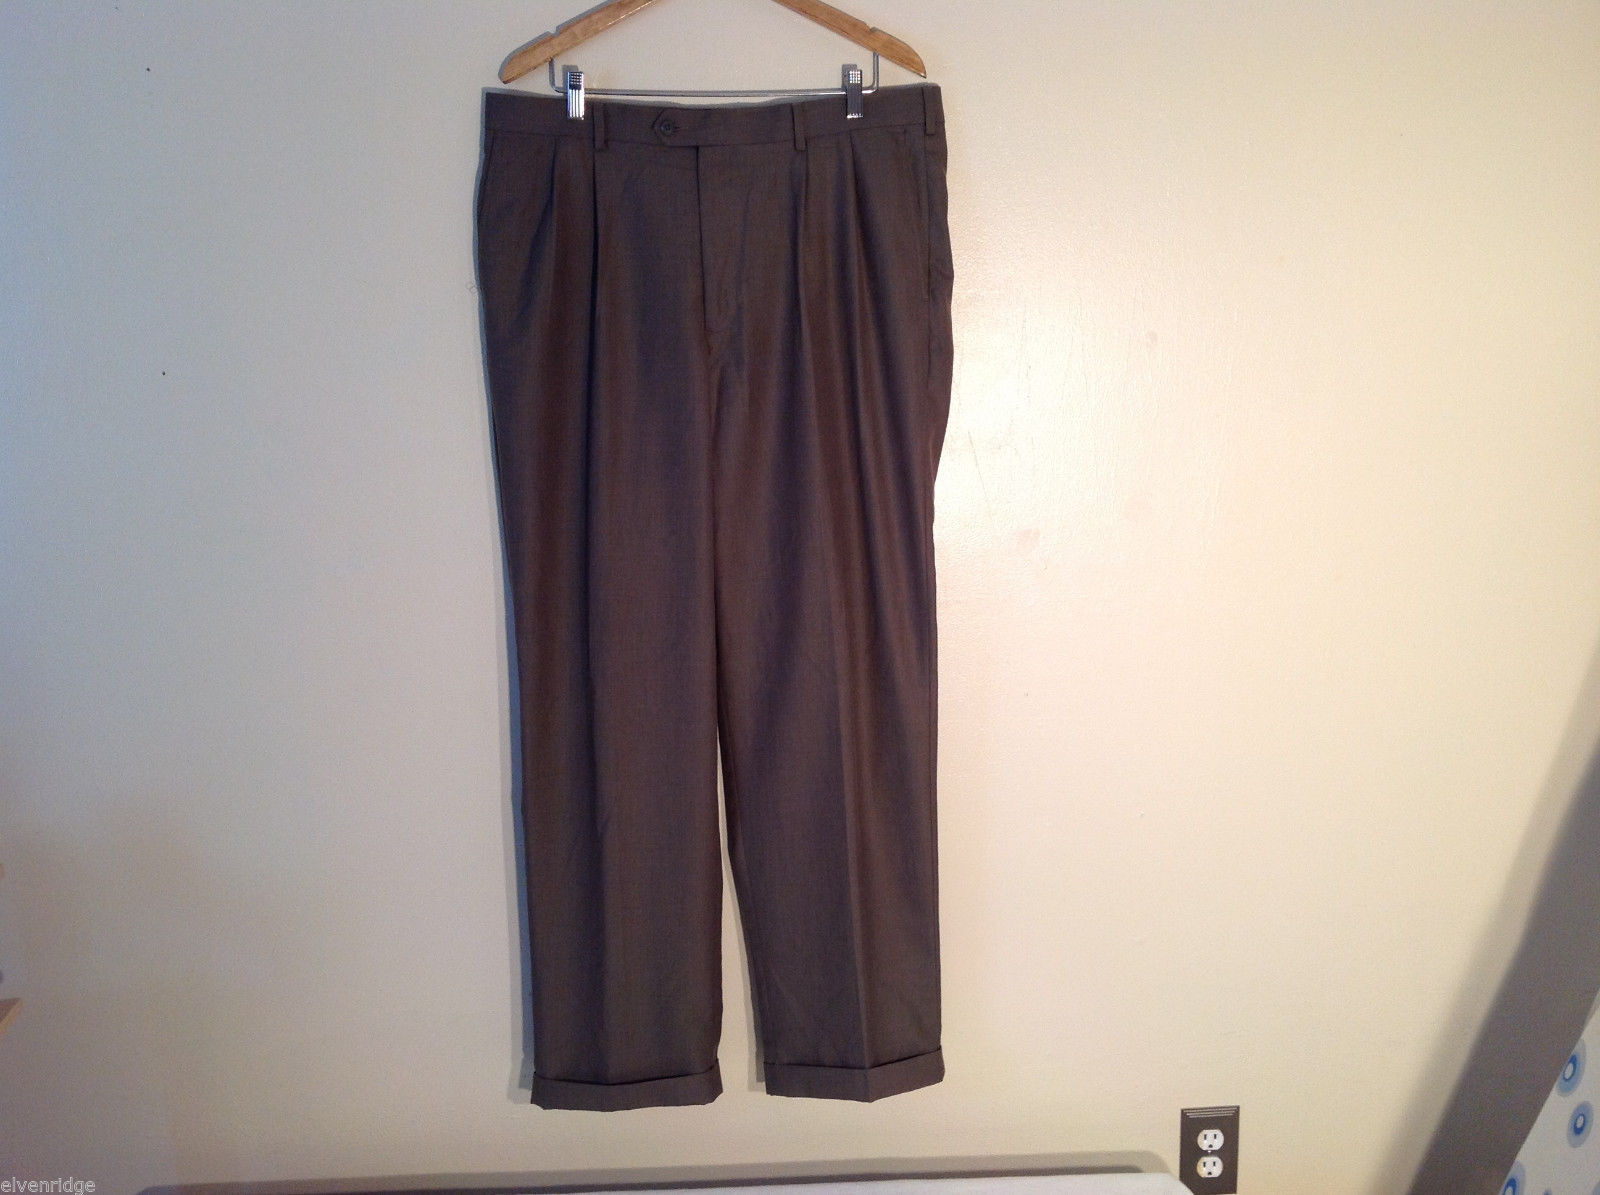 "Perry Ellis America Men's Size L 38/34 Brown Dress Pants Pleated, 1"" Cuffed Legs"